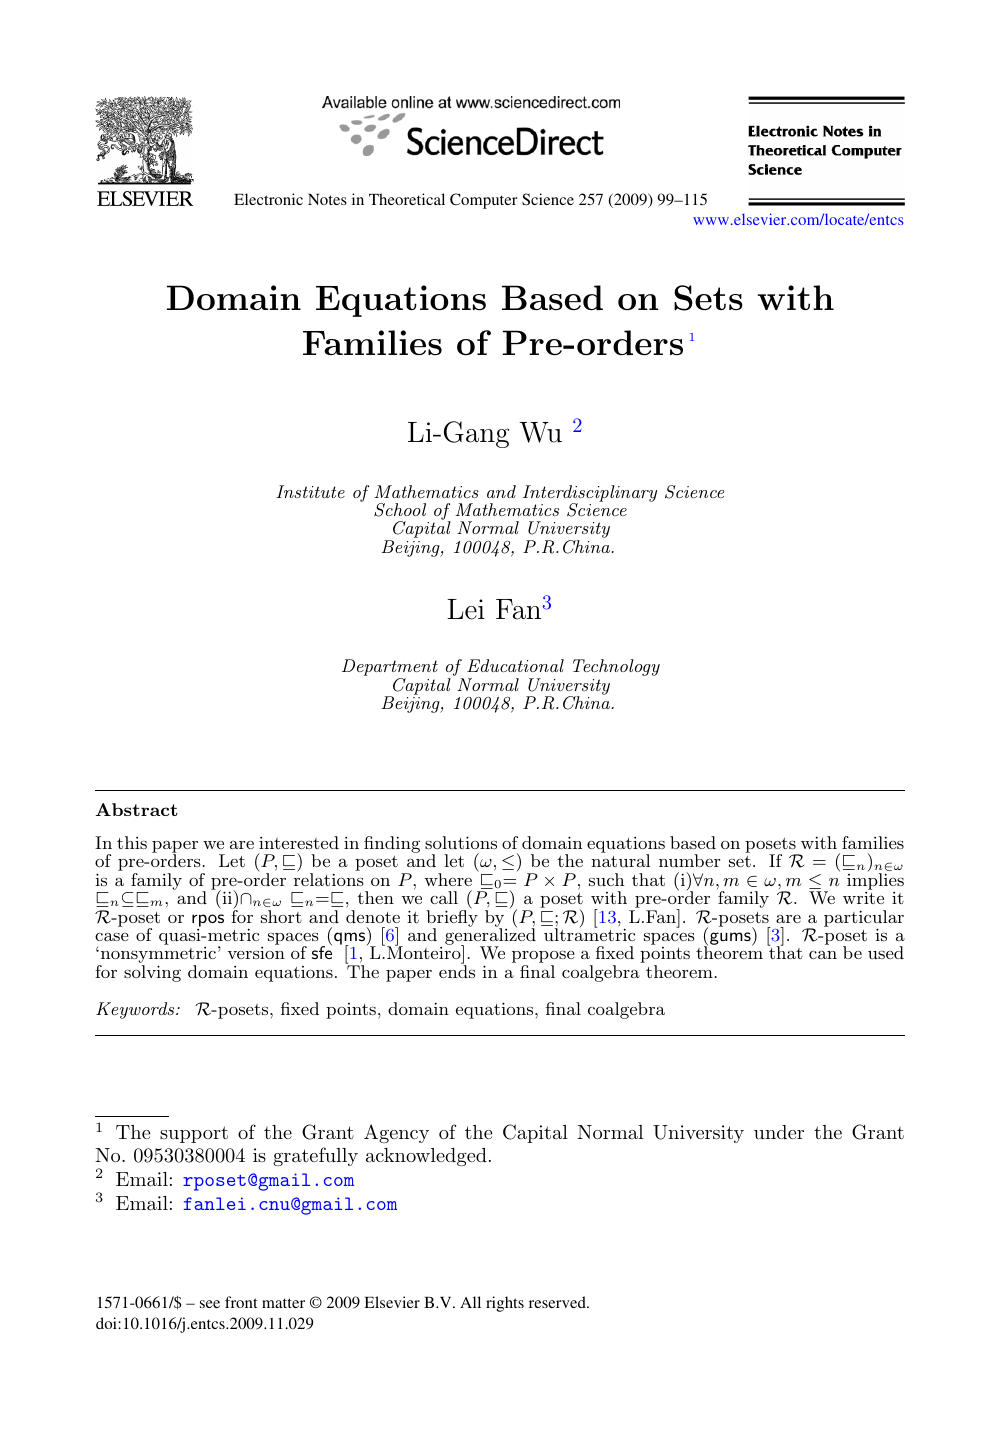 Domain Equations Based on Sets with Families of Pre-orders – topic